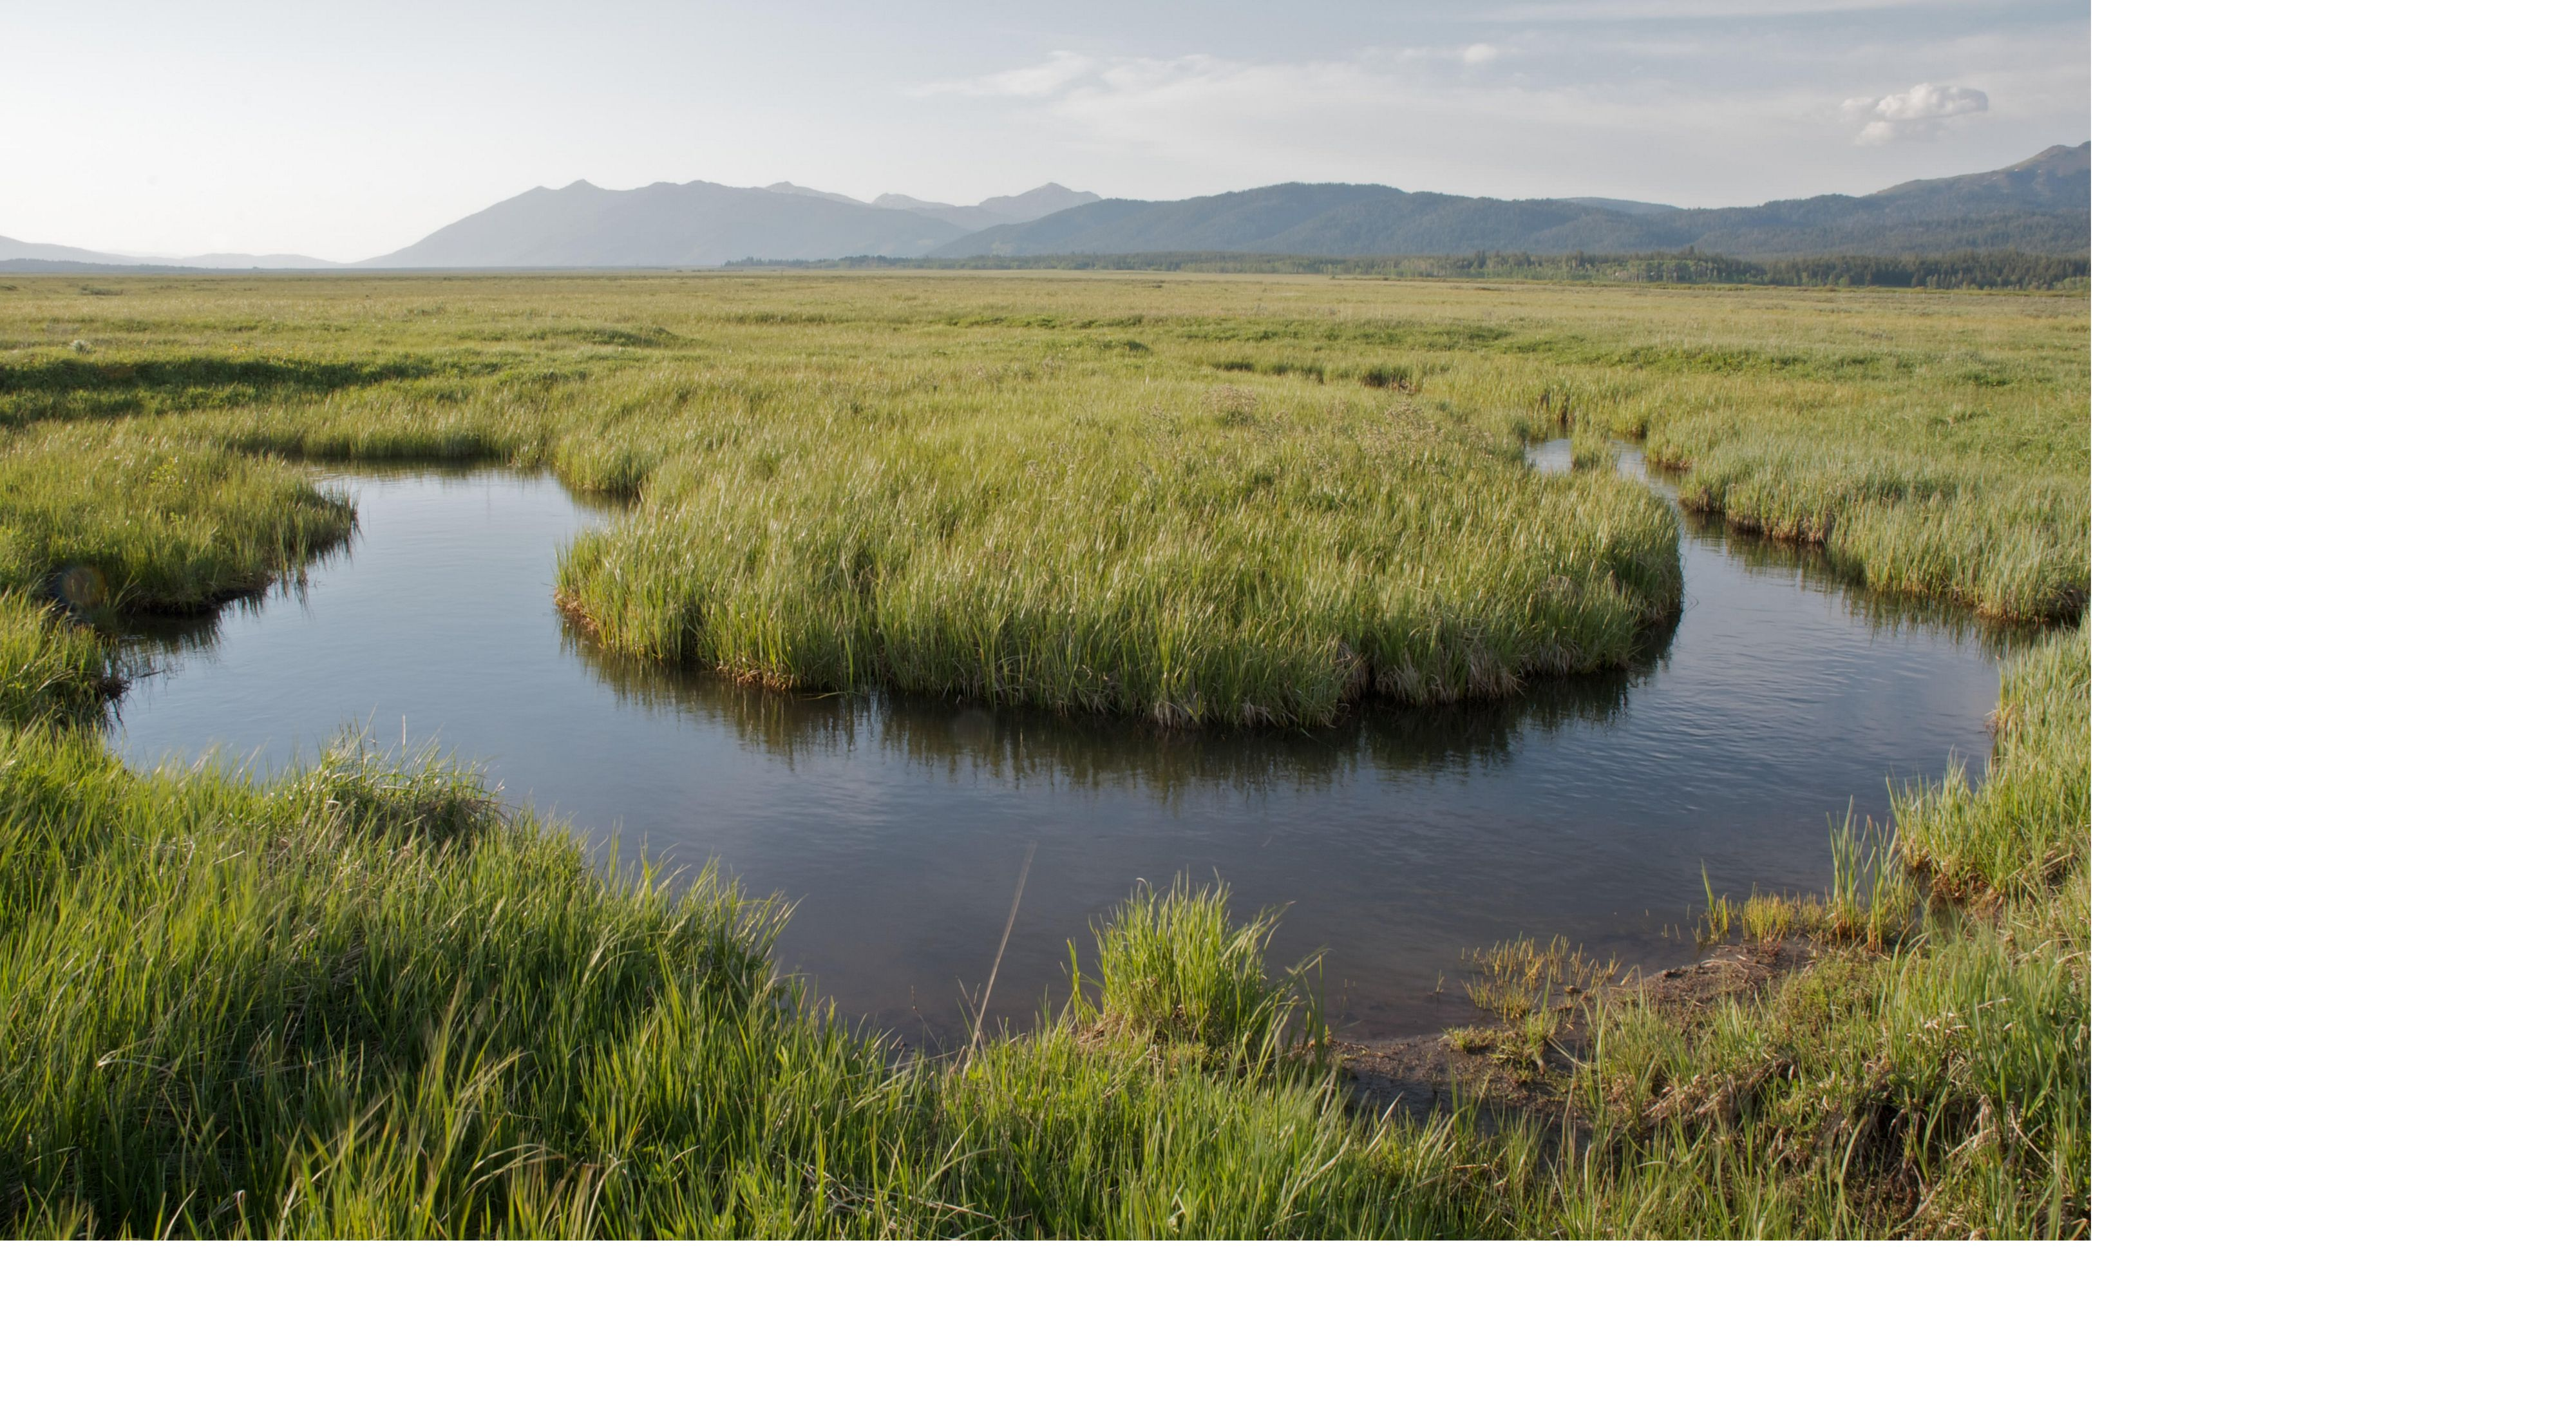 A meandering creek running through grassy fields with hills in the background.